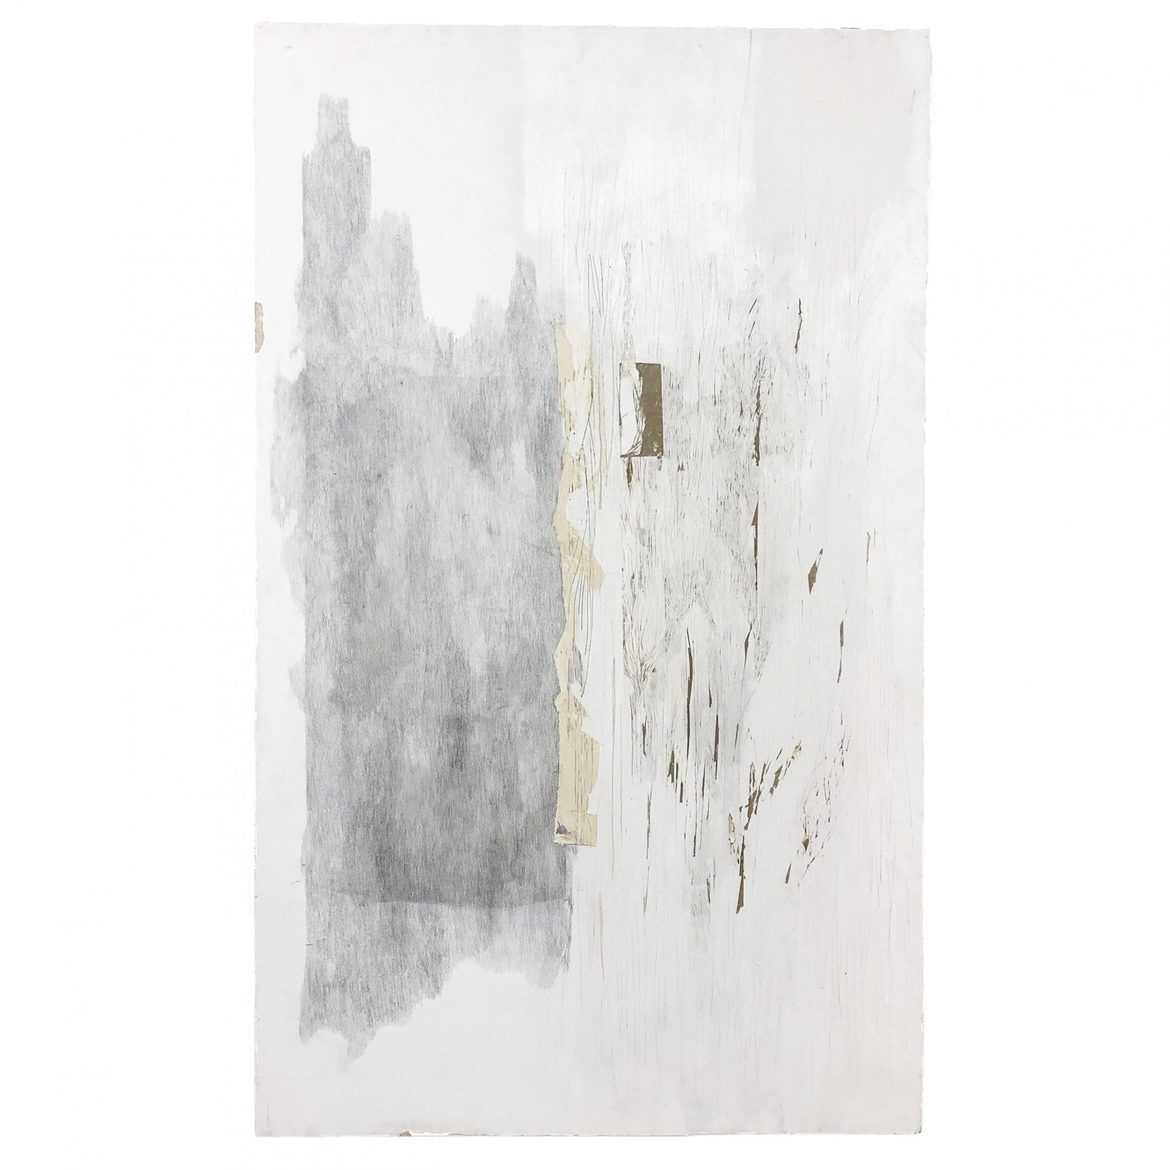 'Studio Wall', 2019, Plasterboard extracted from studio wall, graphite pencil, 204 x 123 cm